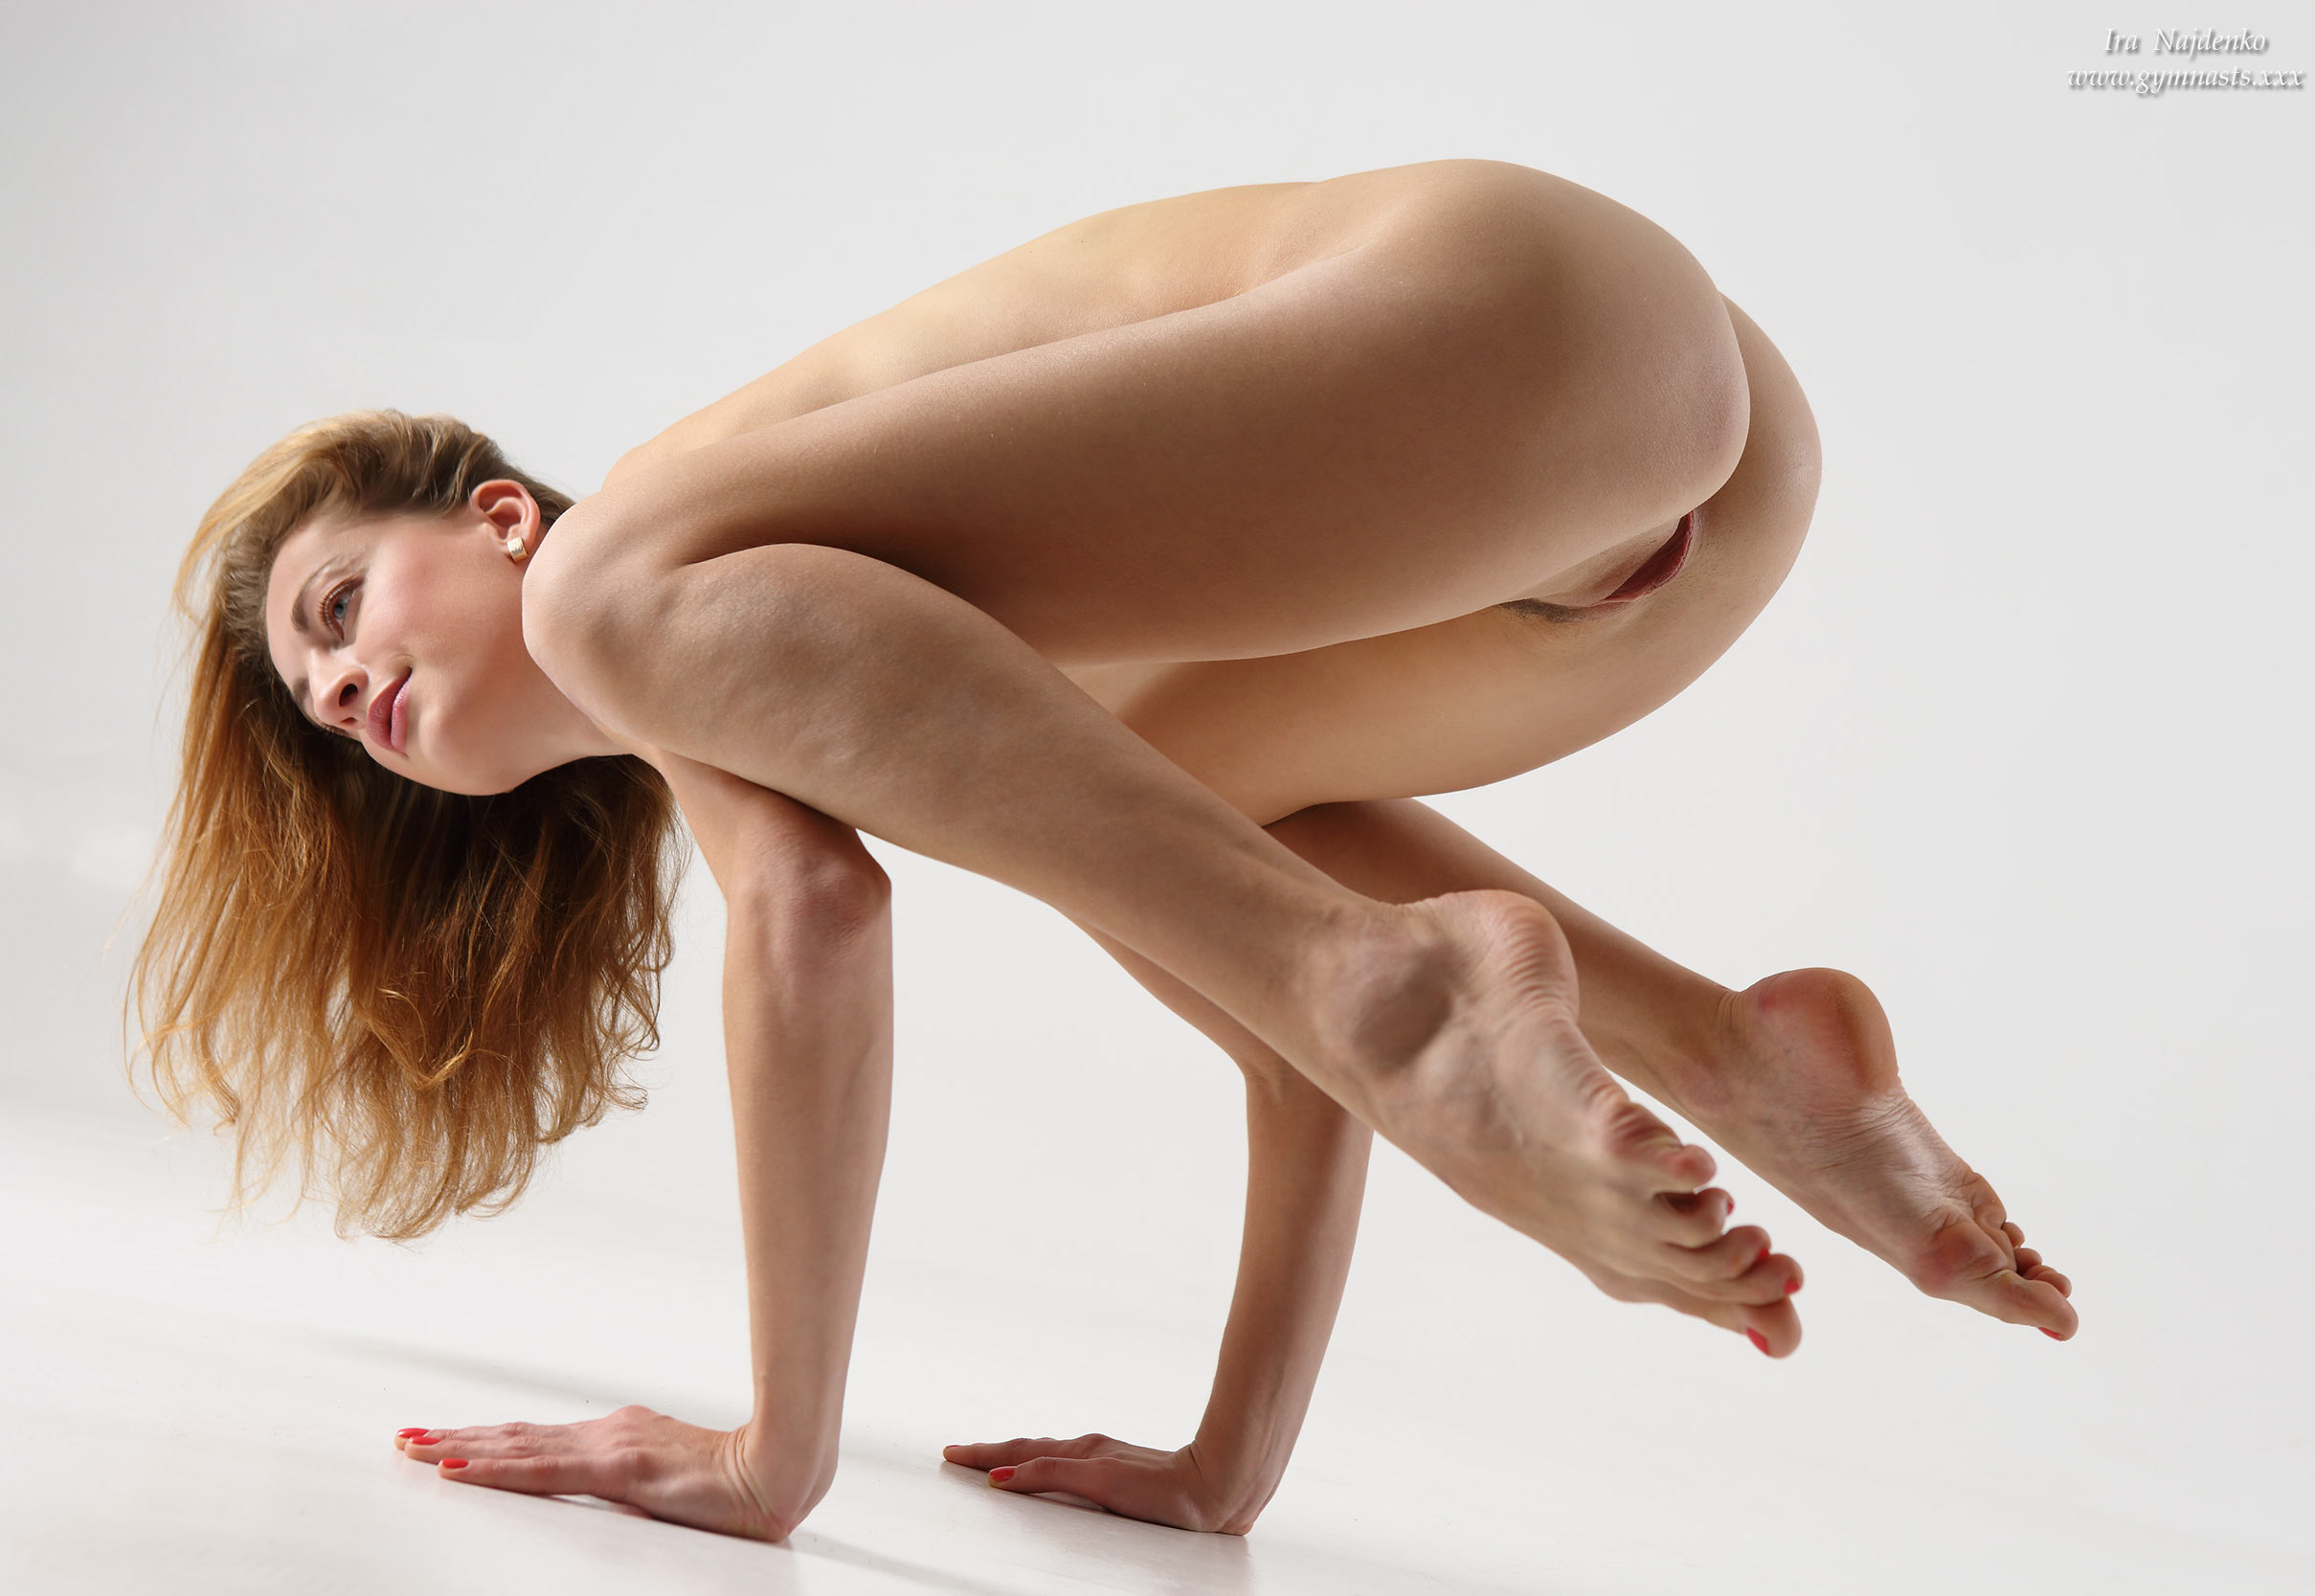 Naked women in sexy positions